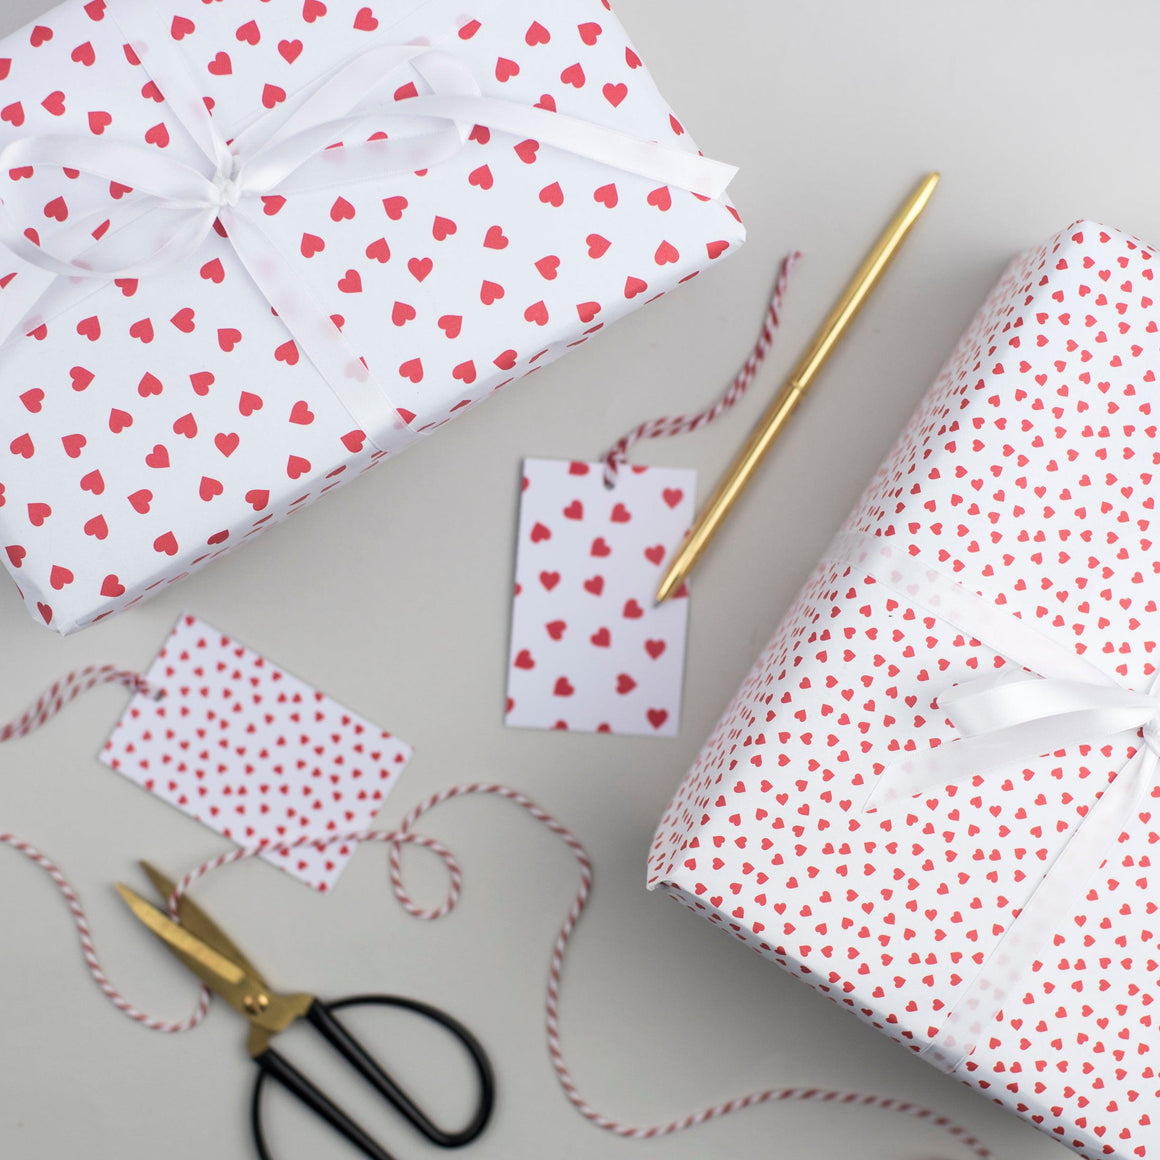 Red Heart Valentine's Wrapping Paper Set